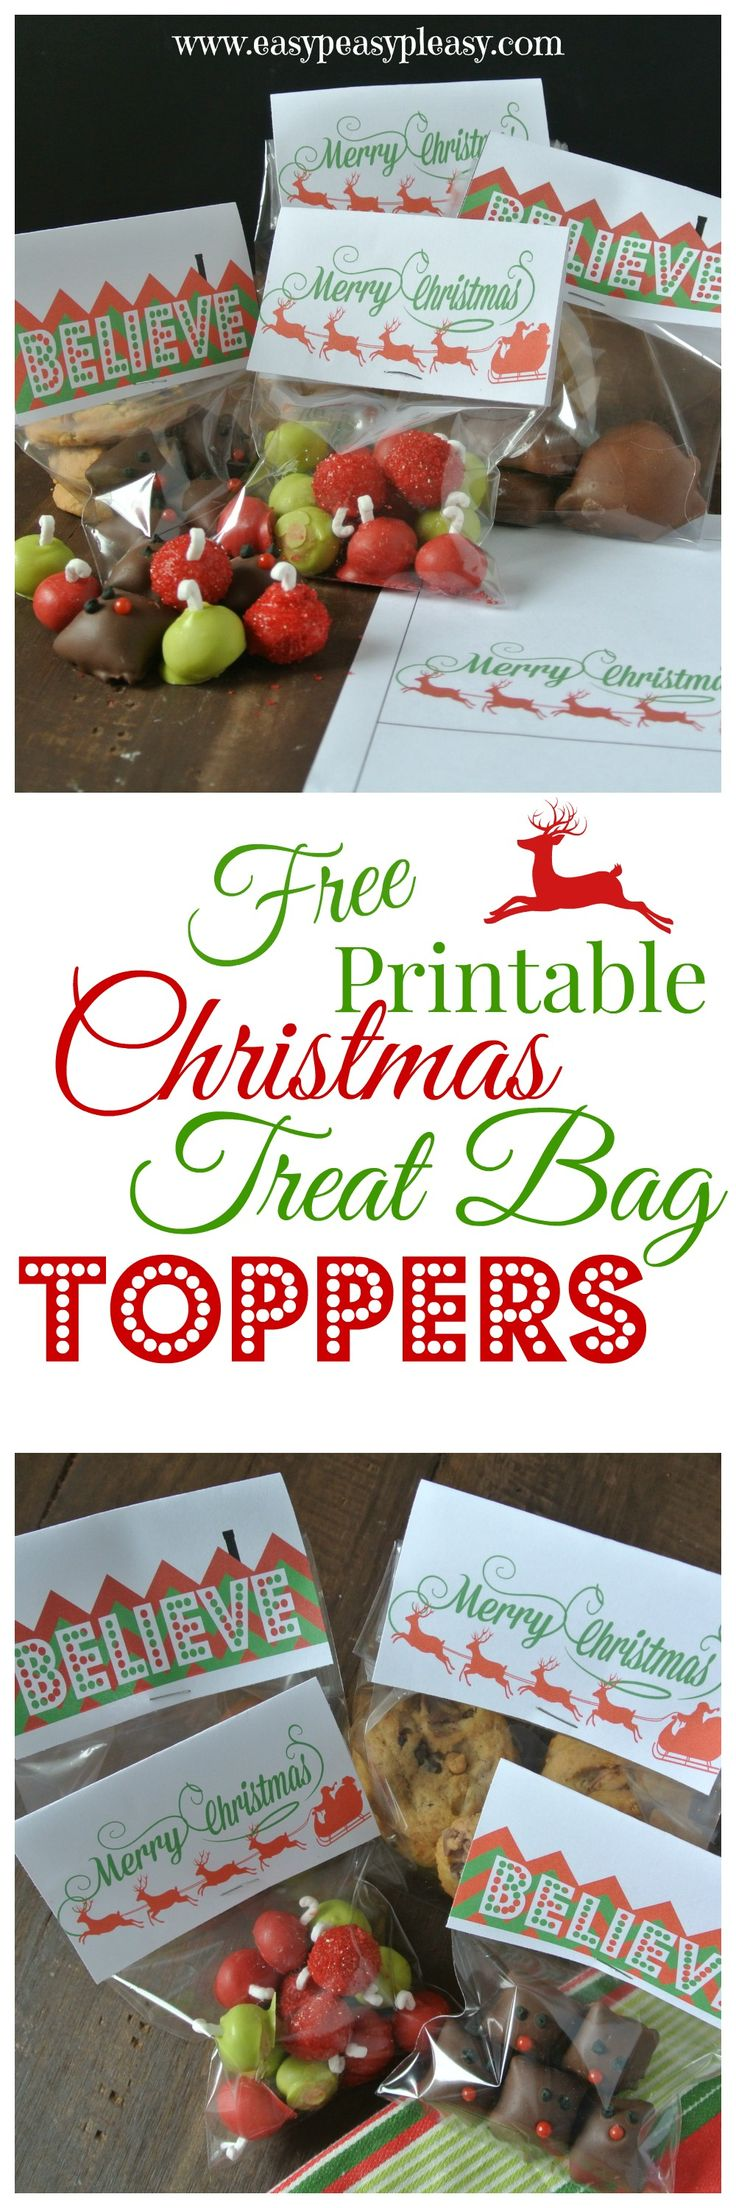 Free Printable Christmas Treat Bag Toppers are perfect for sharing Christmas Candy!